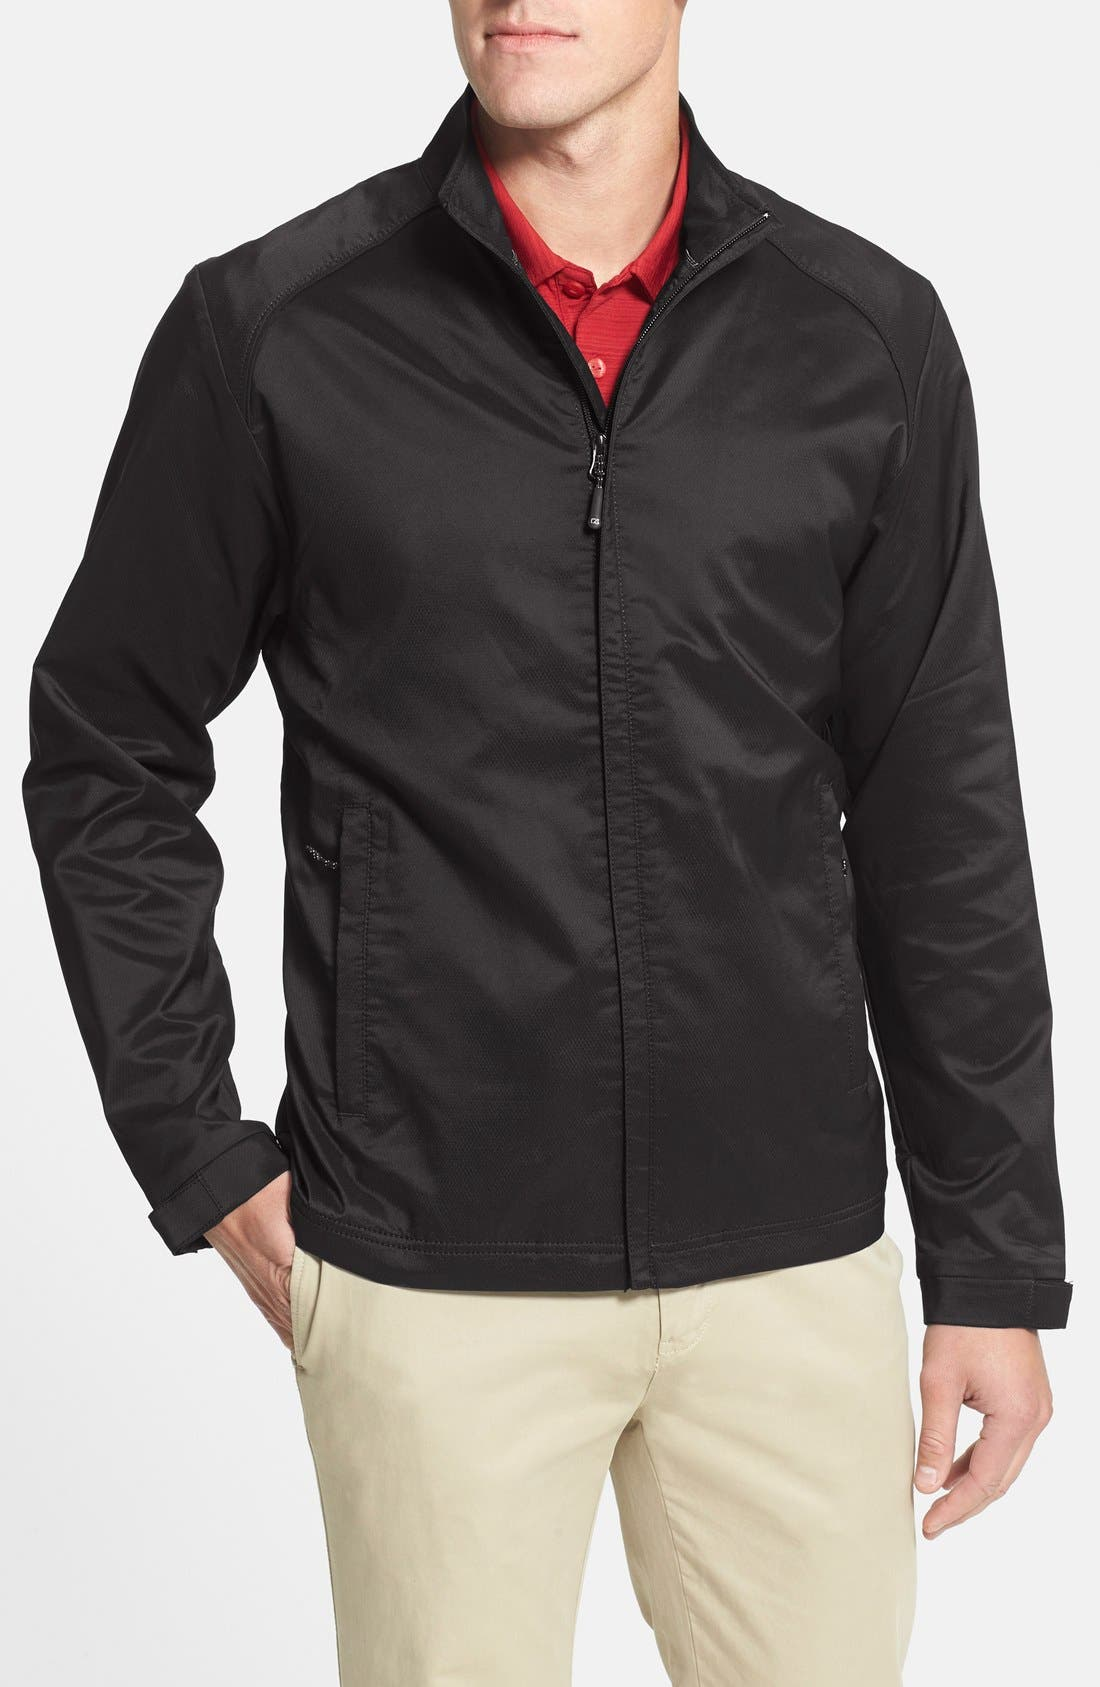 'Blakely' WeatherTec<sup>®</sup> Wind & Water Resistant Full Zip Jacket,                             Main thumbnail 1, color,                             BLACK